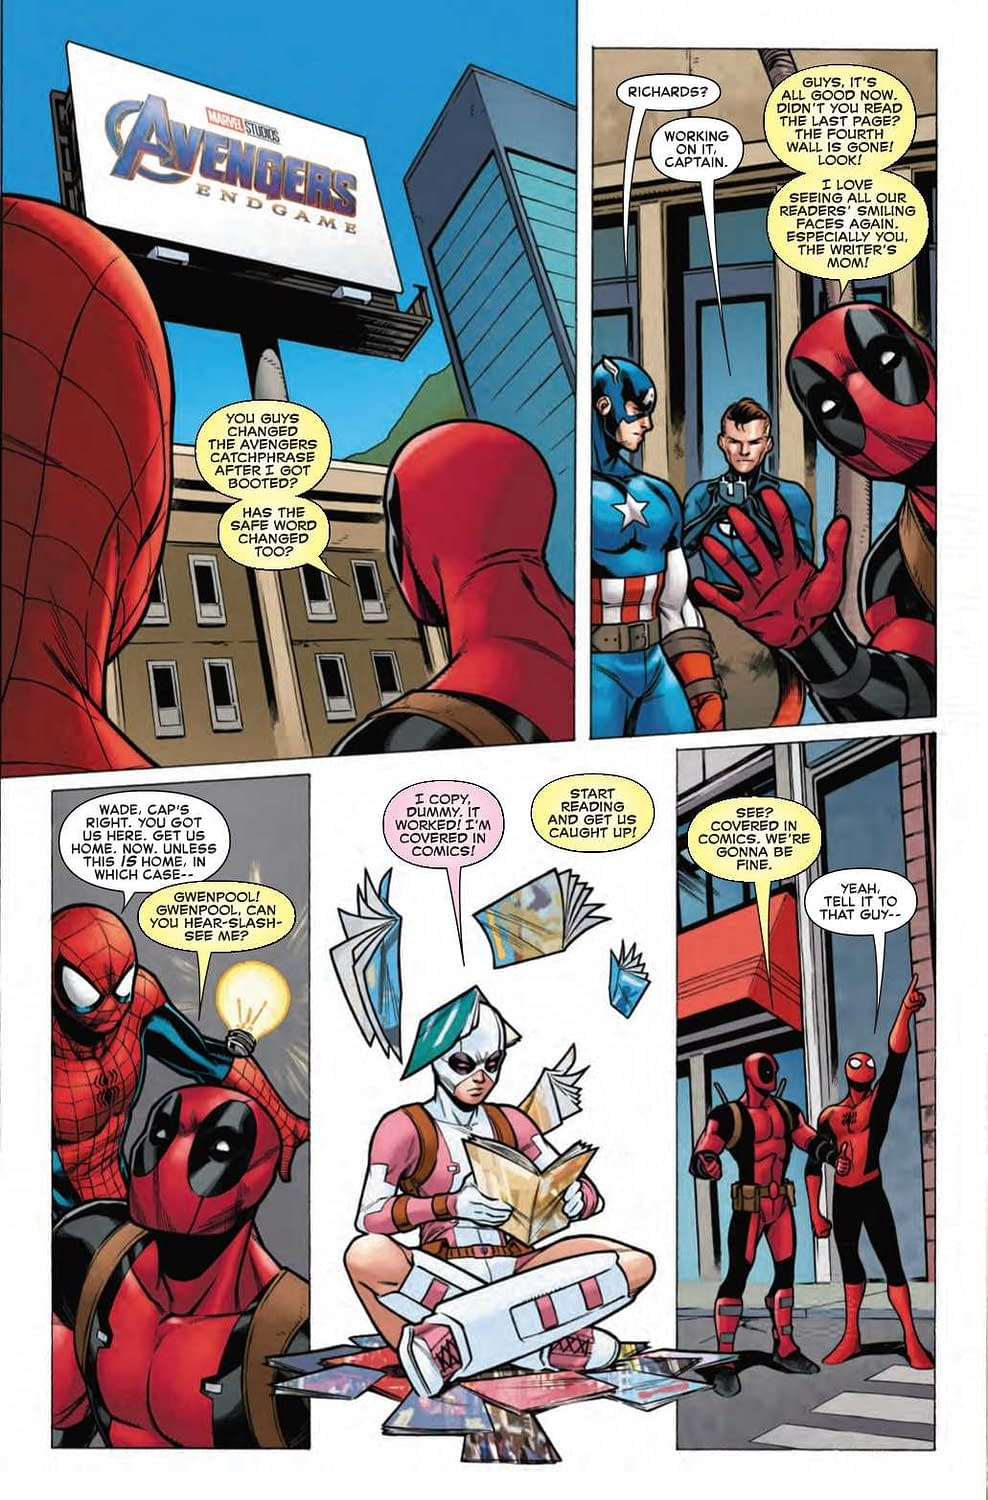 Can Spider-Man/Deadpool #50 Recapture That Rob Liefeld Magic? (Preview)